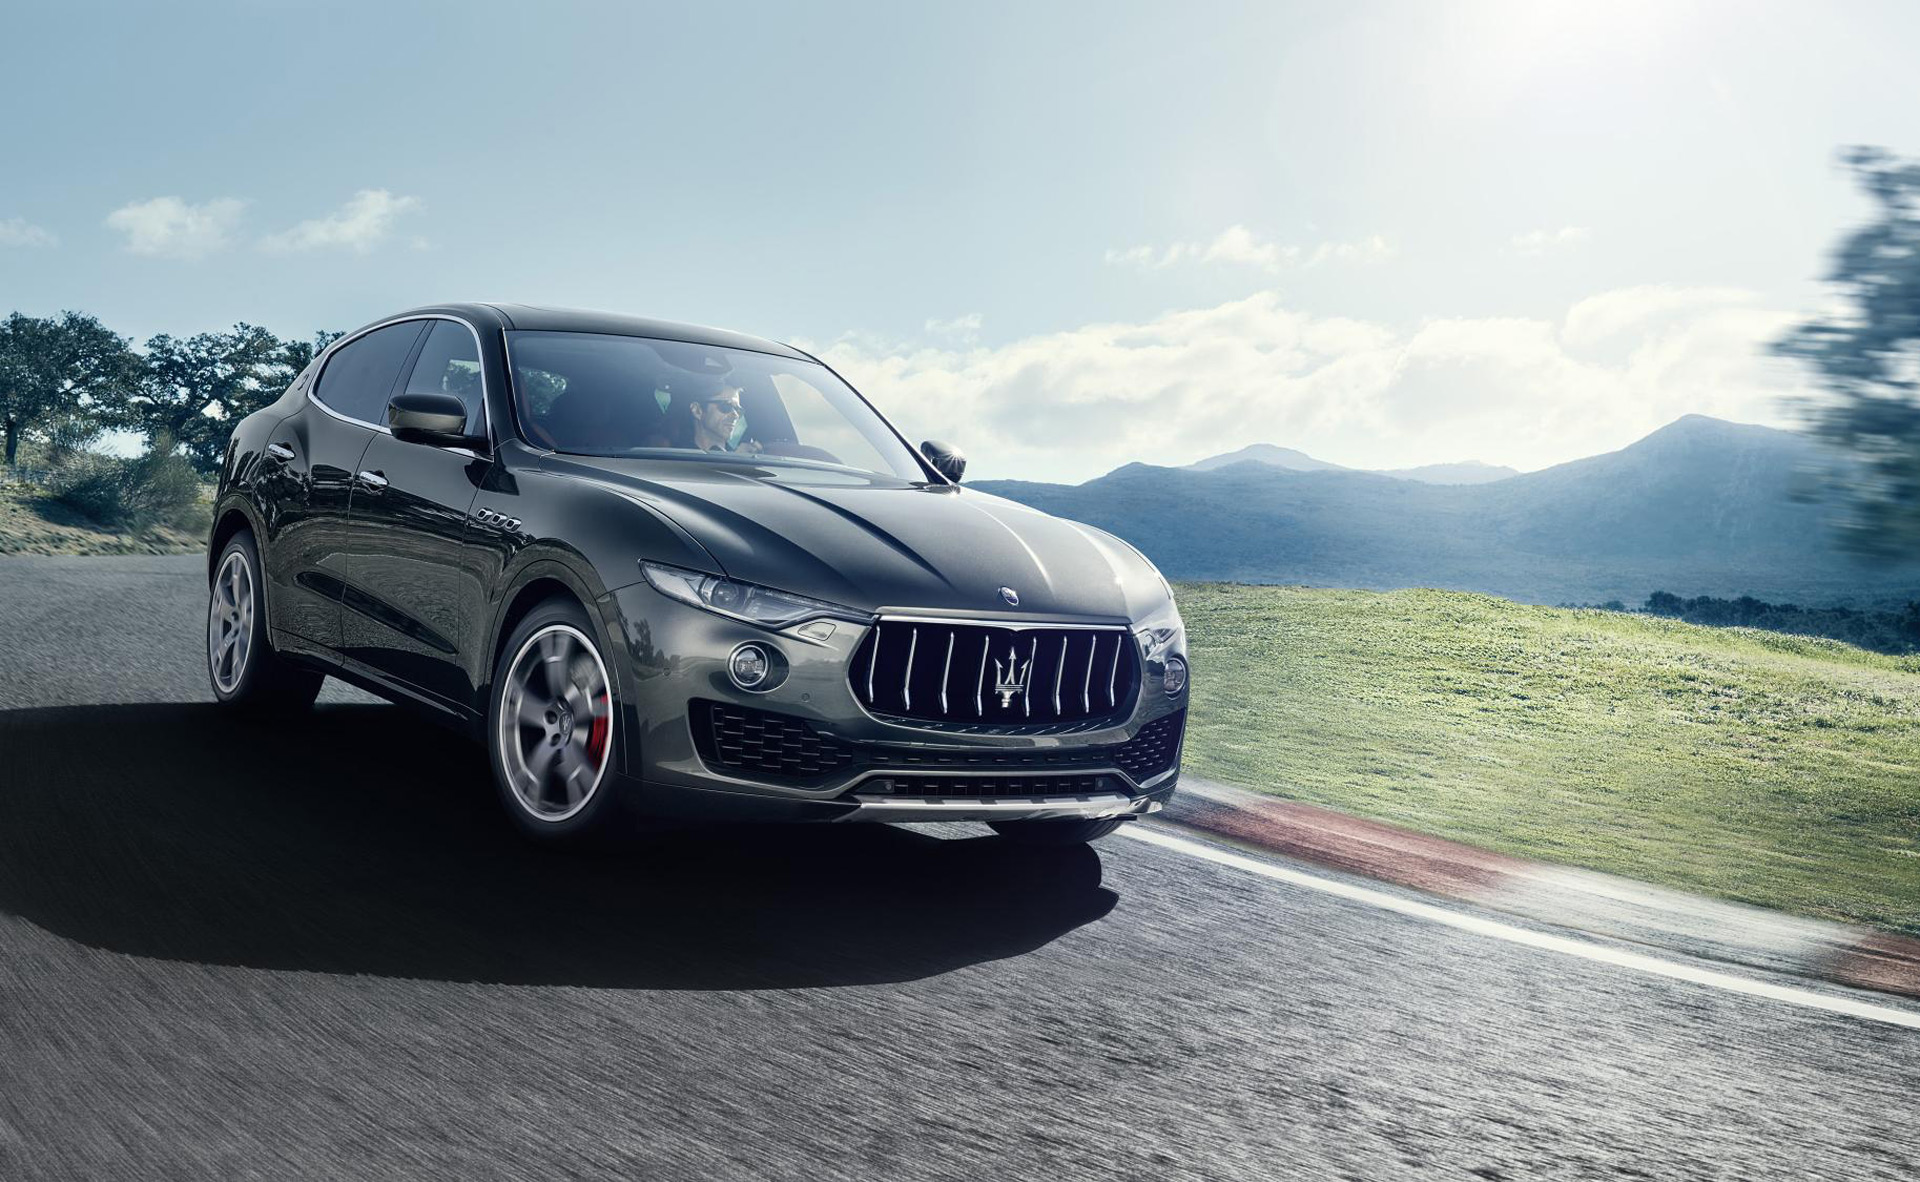 Maserati Levante Suv To Get Plug In Hybrid Version Via Pacifica Minivan